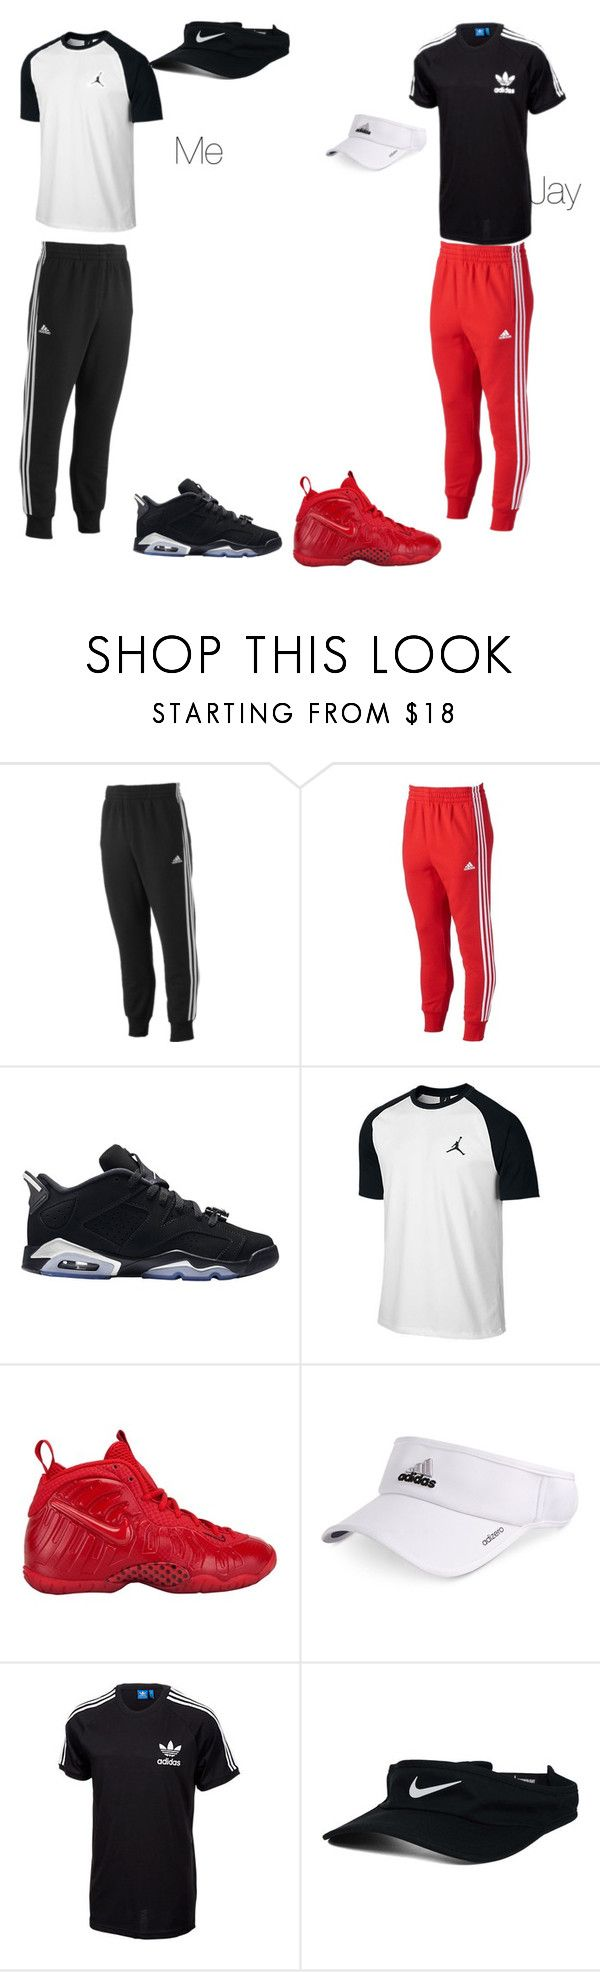 """On tour with Jay ✈️"" by kaishawnpride ❤ liked on Polyvore featuring adidas, Retrò, Jordan Brand, NIKE, men's fashion and menswear"